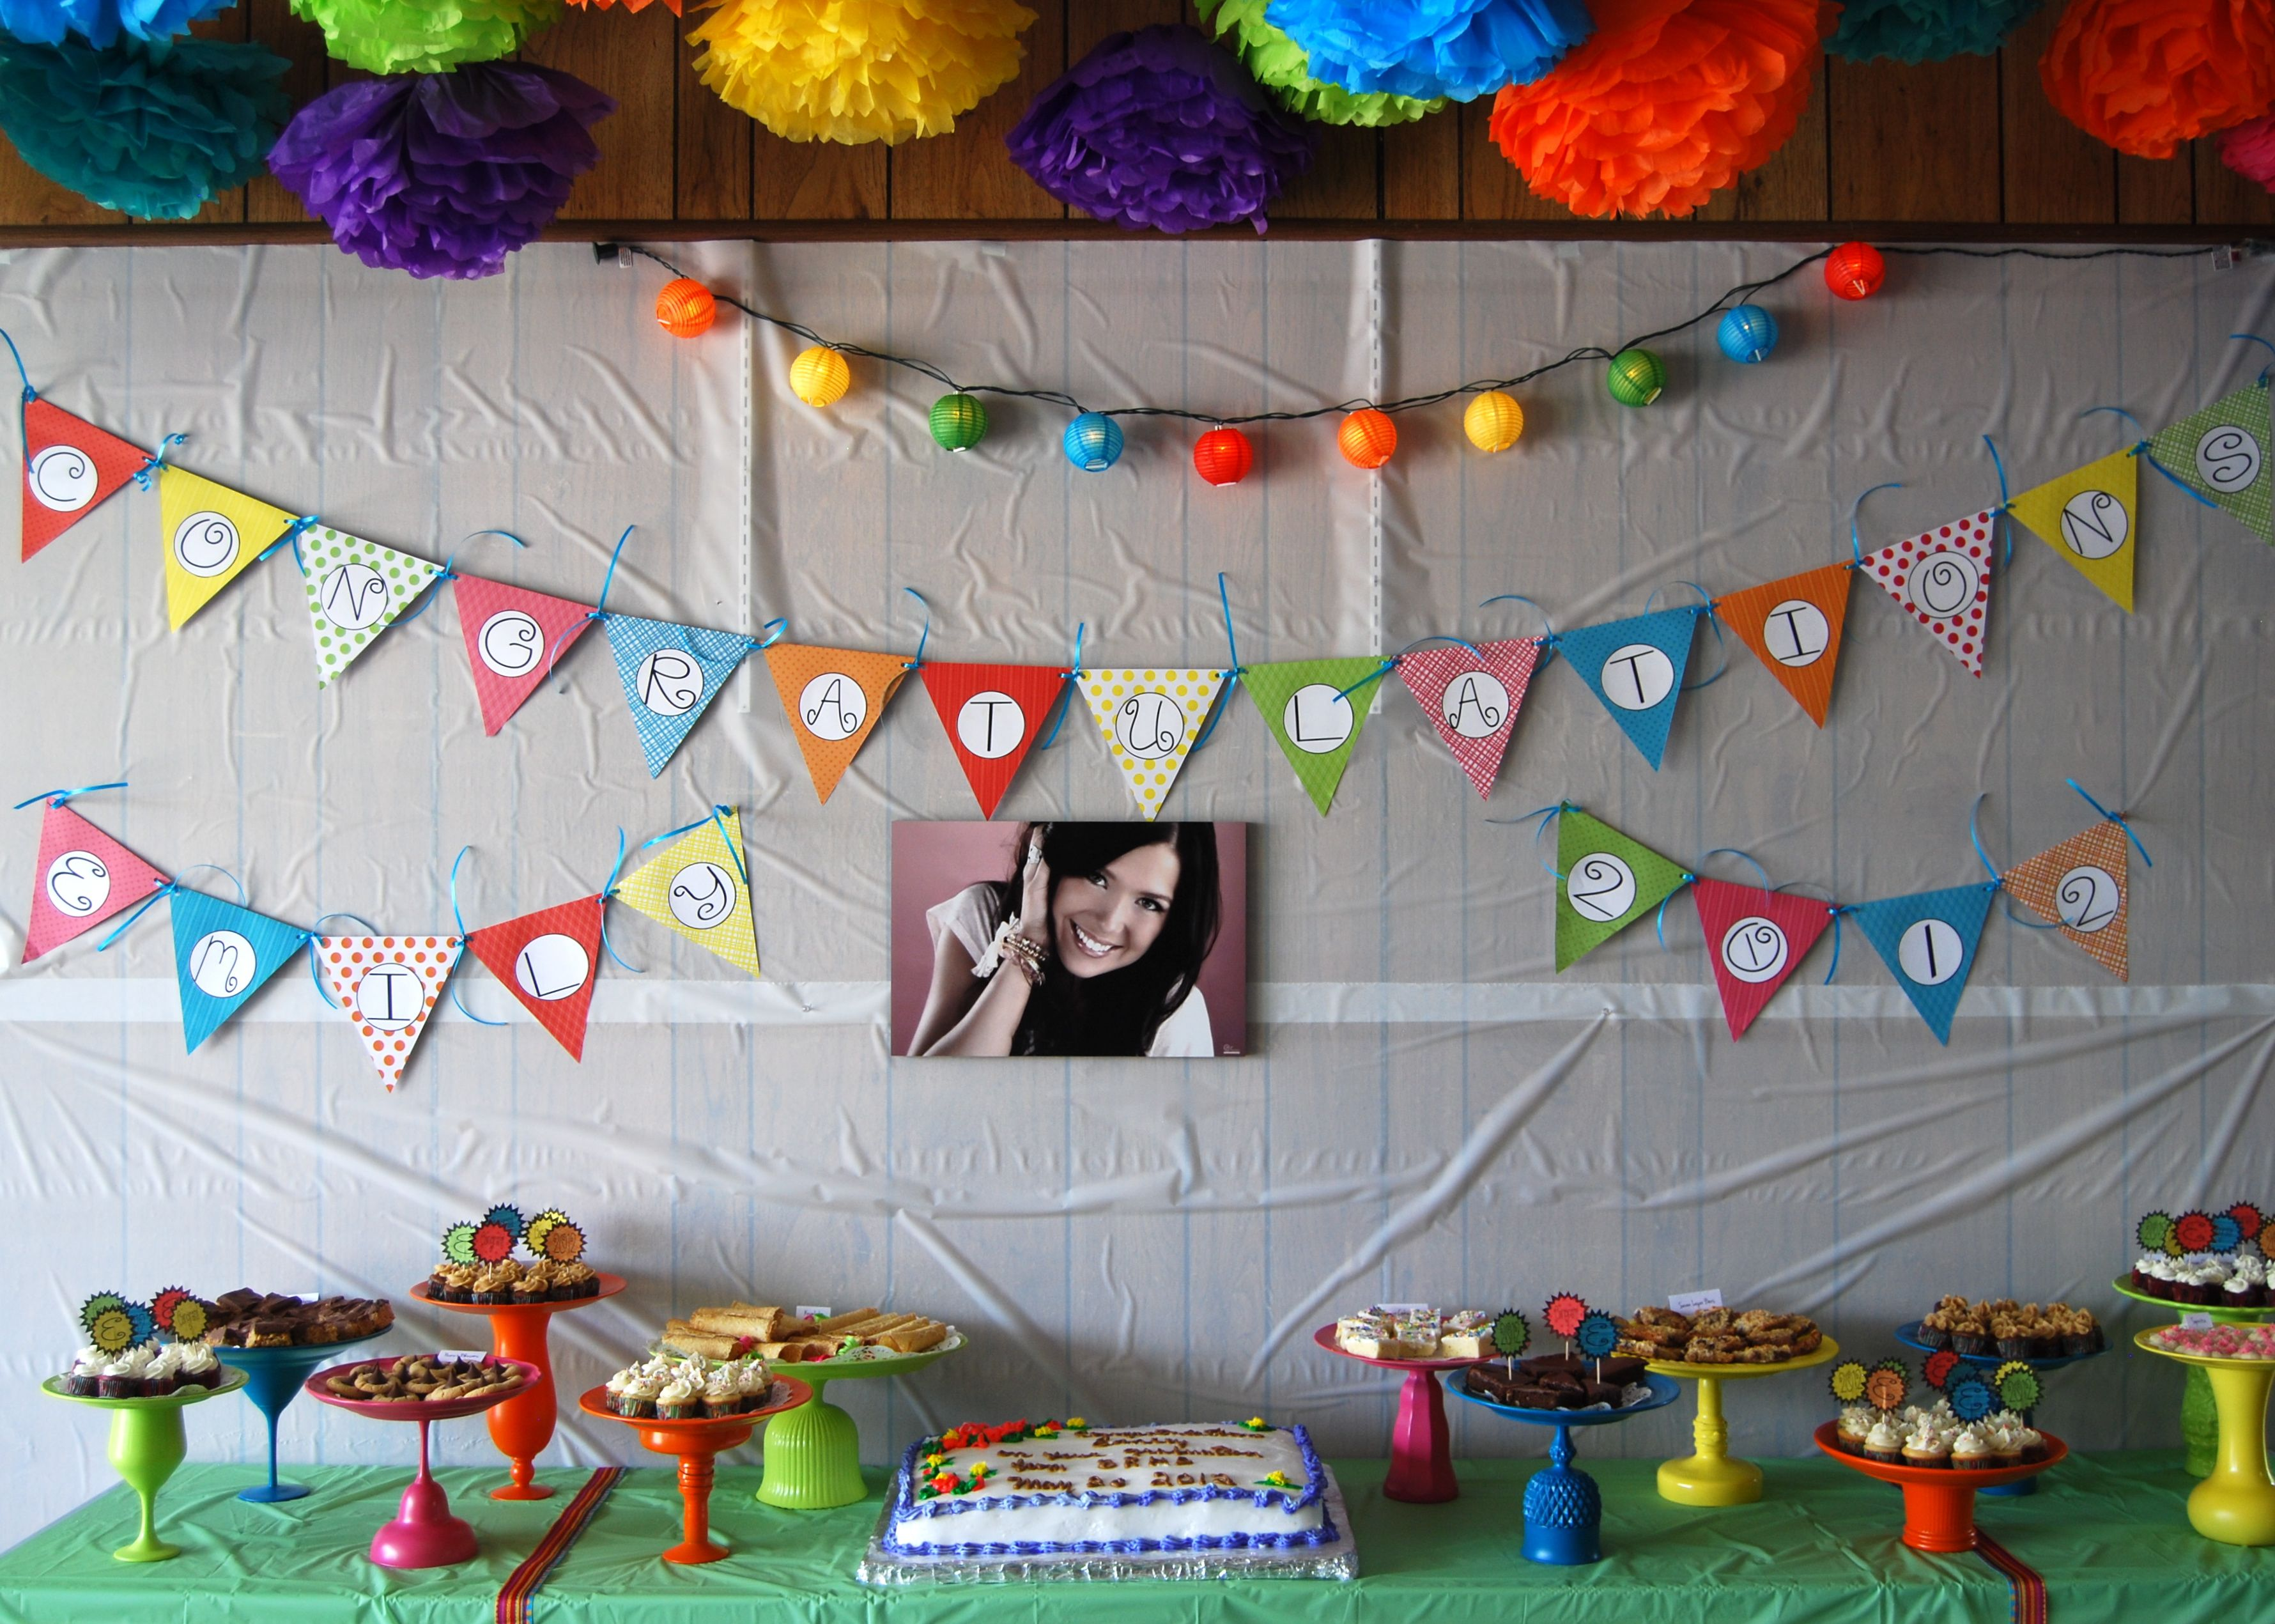 Cute cute cute graduation party pinterest yahoo search decor graduation decoration ideas in the event indoors with pom poms and art decoration on a ribbon in the strand right on the walls and ceiling of the room amipublicfo Image collections